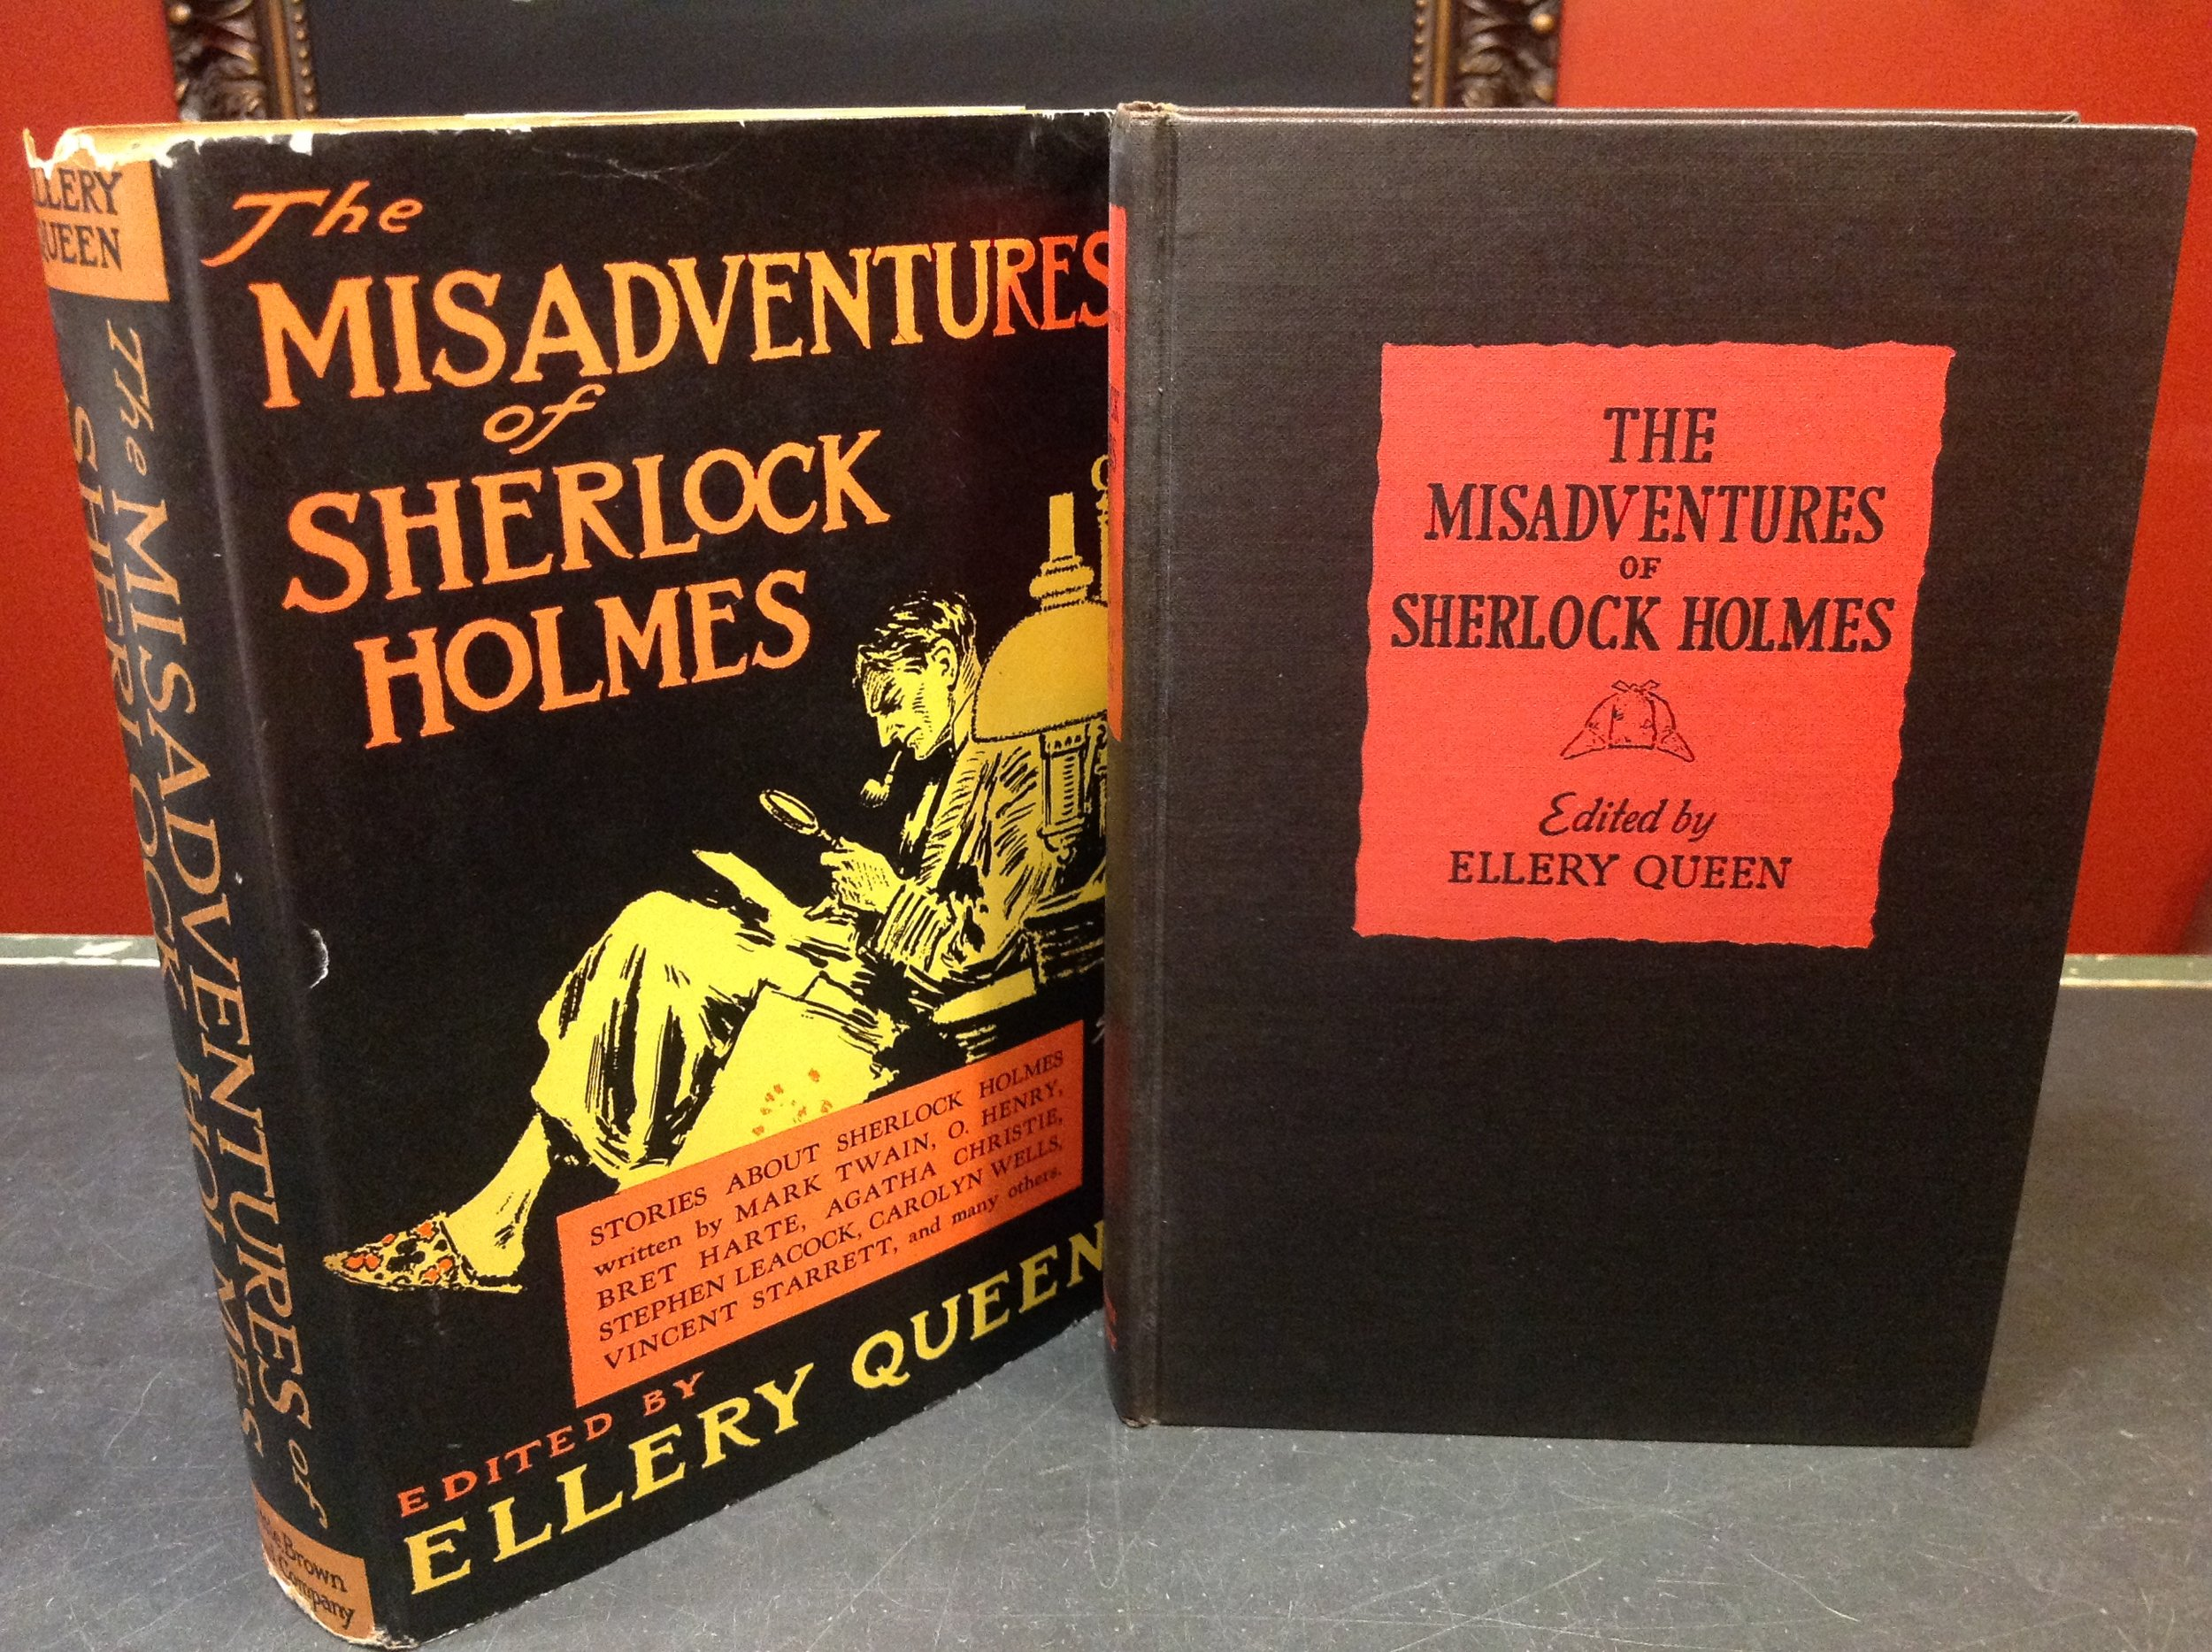 The Misadventures of Sherlock Holmes, edited by Ellery Queen - 1944 First Edition, Little, Brown & Co., Signed twice as